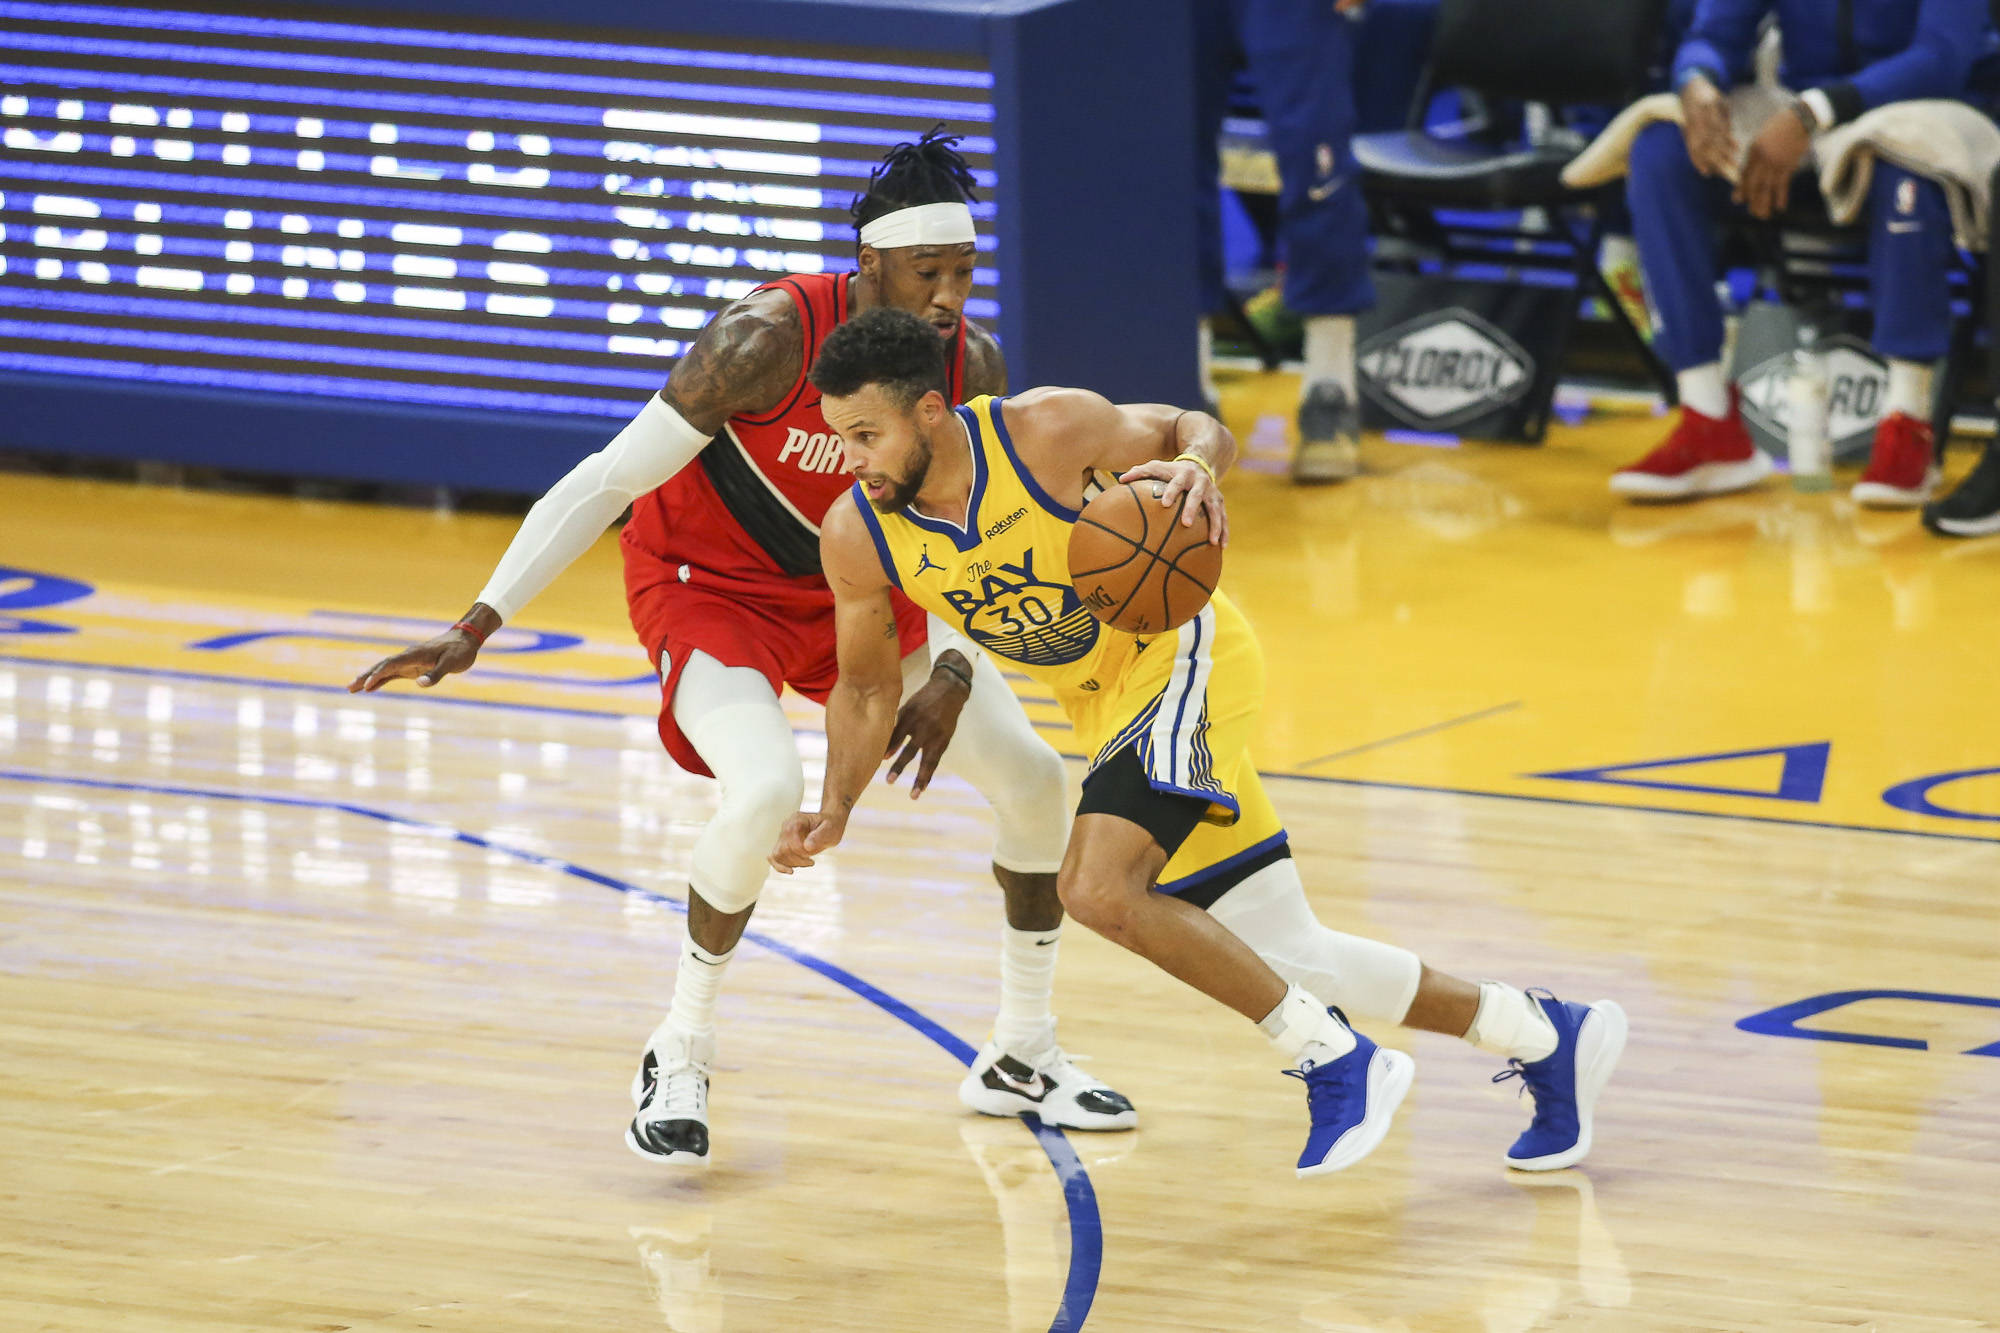 Golden State Warriors point guard Stephen Currey (30) gets trailed by Portland Blazers forward Robert Convington (23) in the 1st quarter at Chase Center on January 3, 2021 in San Francisco, California.(Chris Victorio | Special to the S.F. Examiner).